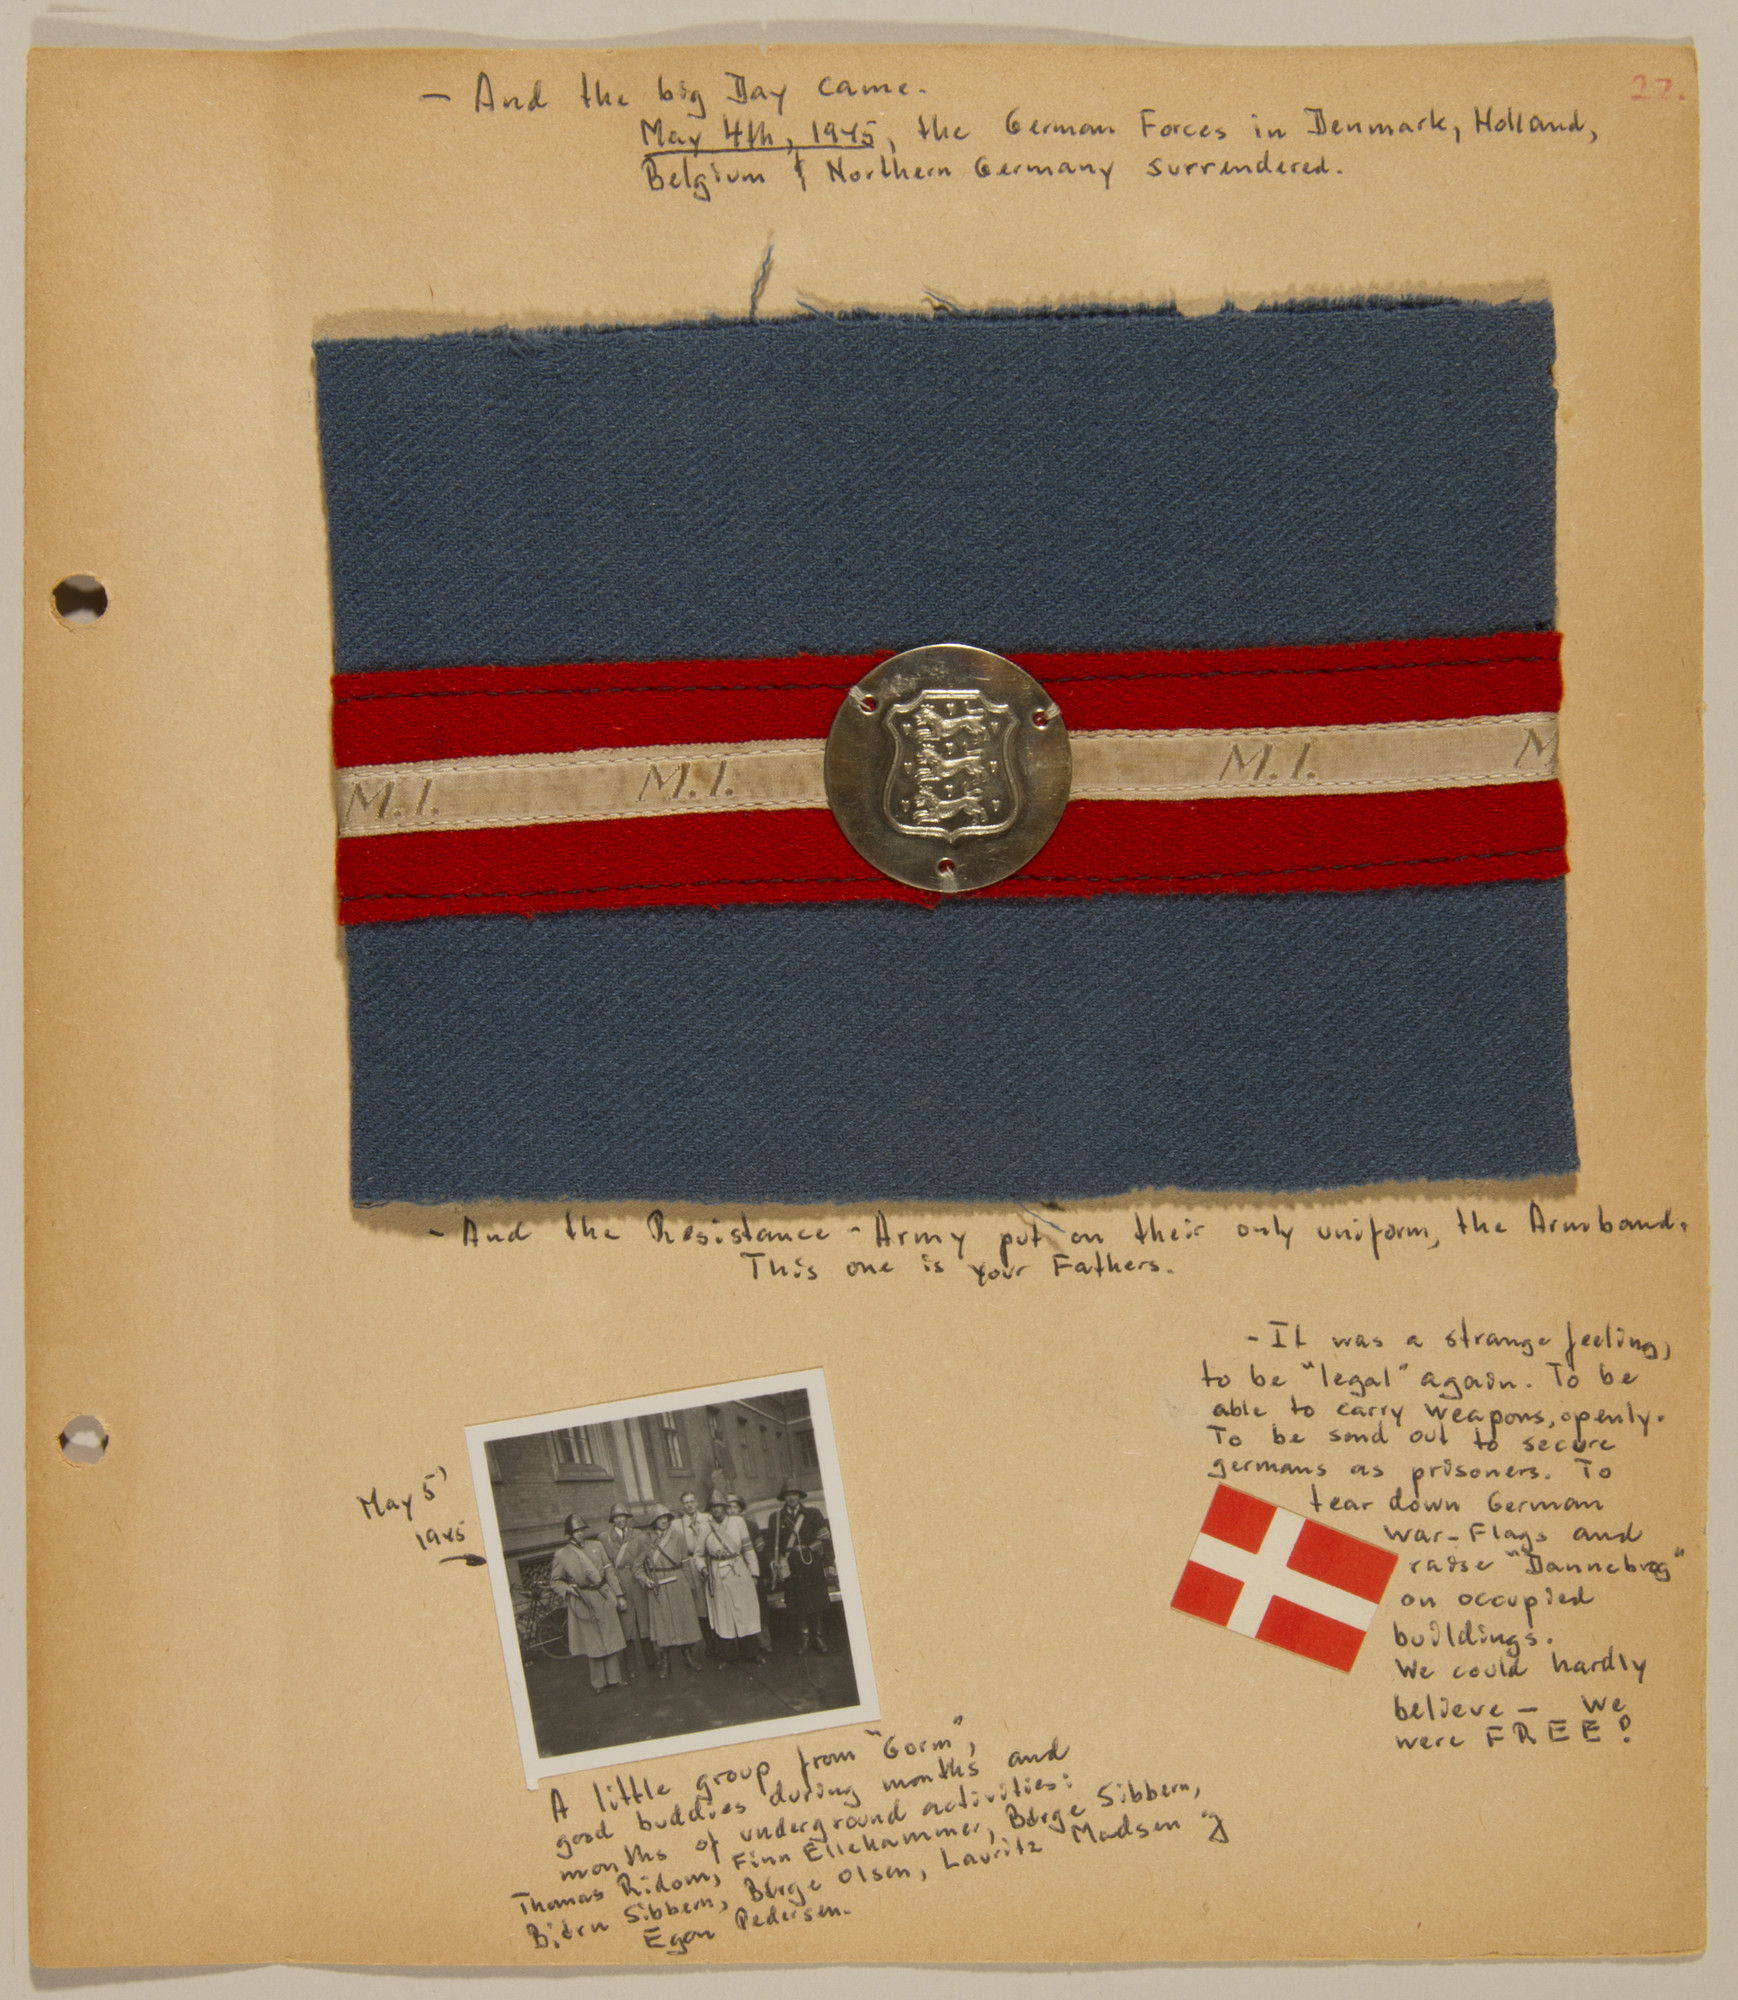 Page from volume five of a set of scrapbooks compiled by Bjorn Sibbern, a Danish policeman and resistance member, documenting the German occupation of Denmark.  This page, marking the May 4, 1945 liberation of Denmark, contains the resistance armband worn by Bjorn Sibbern.